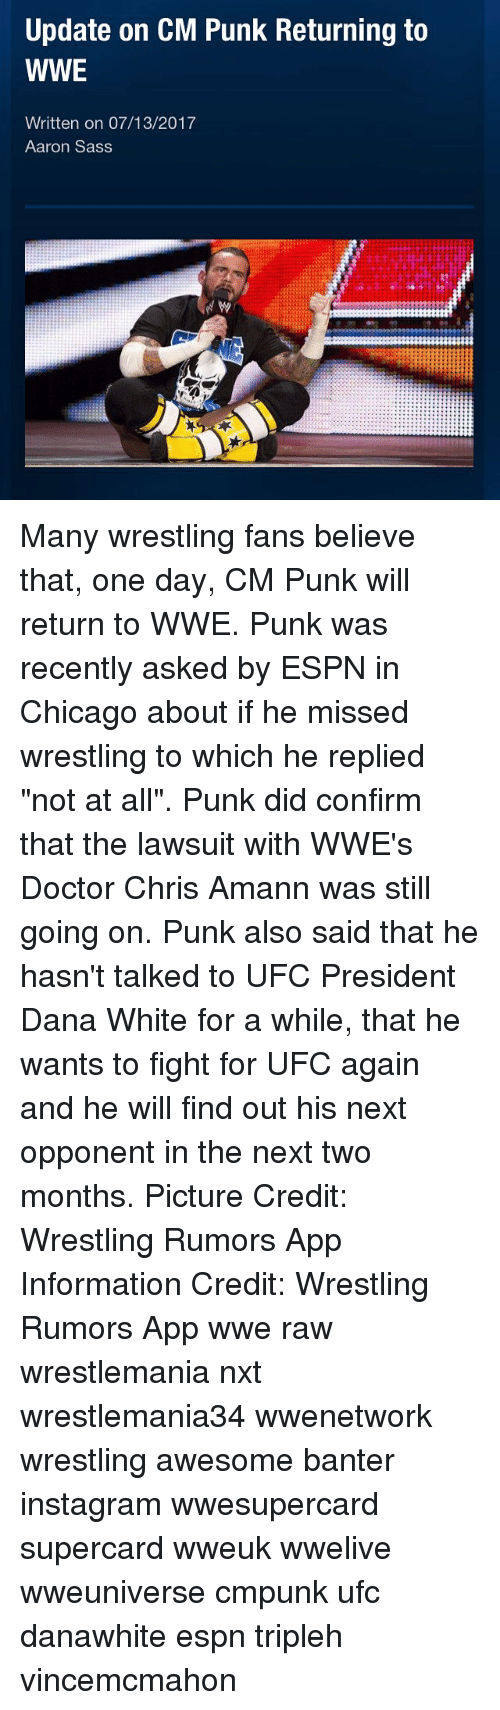 "Cm Punk: Update on CM Punk Returning to  WWE  Written on 07/13/2017  Aaron Sass Many wrestling fans believe that, one day, CM Punk will return to WWE. Punk was recently asked by ESPN in Chicago about if he missed wrestling to which he replied ""not at all"". Punk did confirm that the lawsuit with WWE's Doctor Chris Amann was still going on. Punk also said that he hasn't talked to UFC President Dana White for a while, that he wants to fight for UFC again and he will find out his next opponent in the next two months. Picture Credit: Wrestling Rumors App Information Credit: Wrestling Rumors App wwe raw wrestlemania nxt wrestlemania34 wwenetwork wrestling awesome banter instagram wwesupercard supercard wweuk wwelive wweuniverse cmpunk ufc danawhite espn tripleh vincemcmahon"